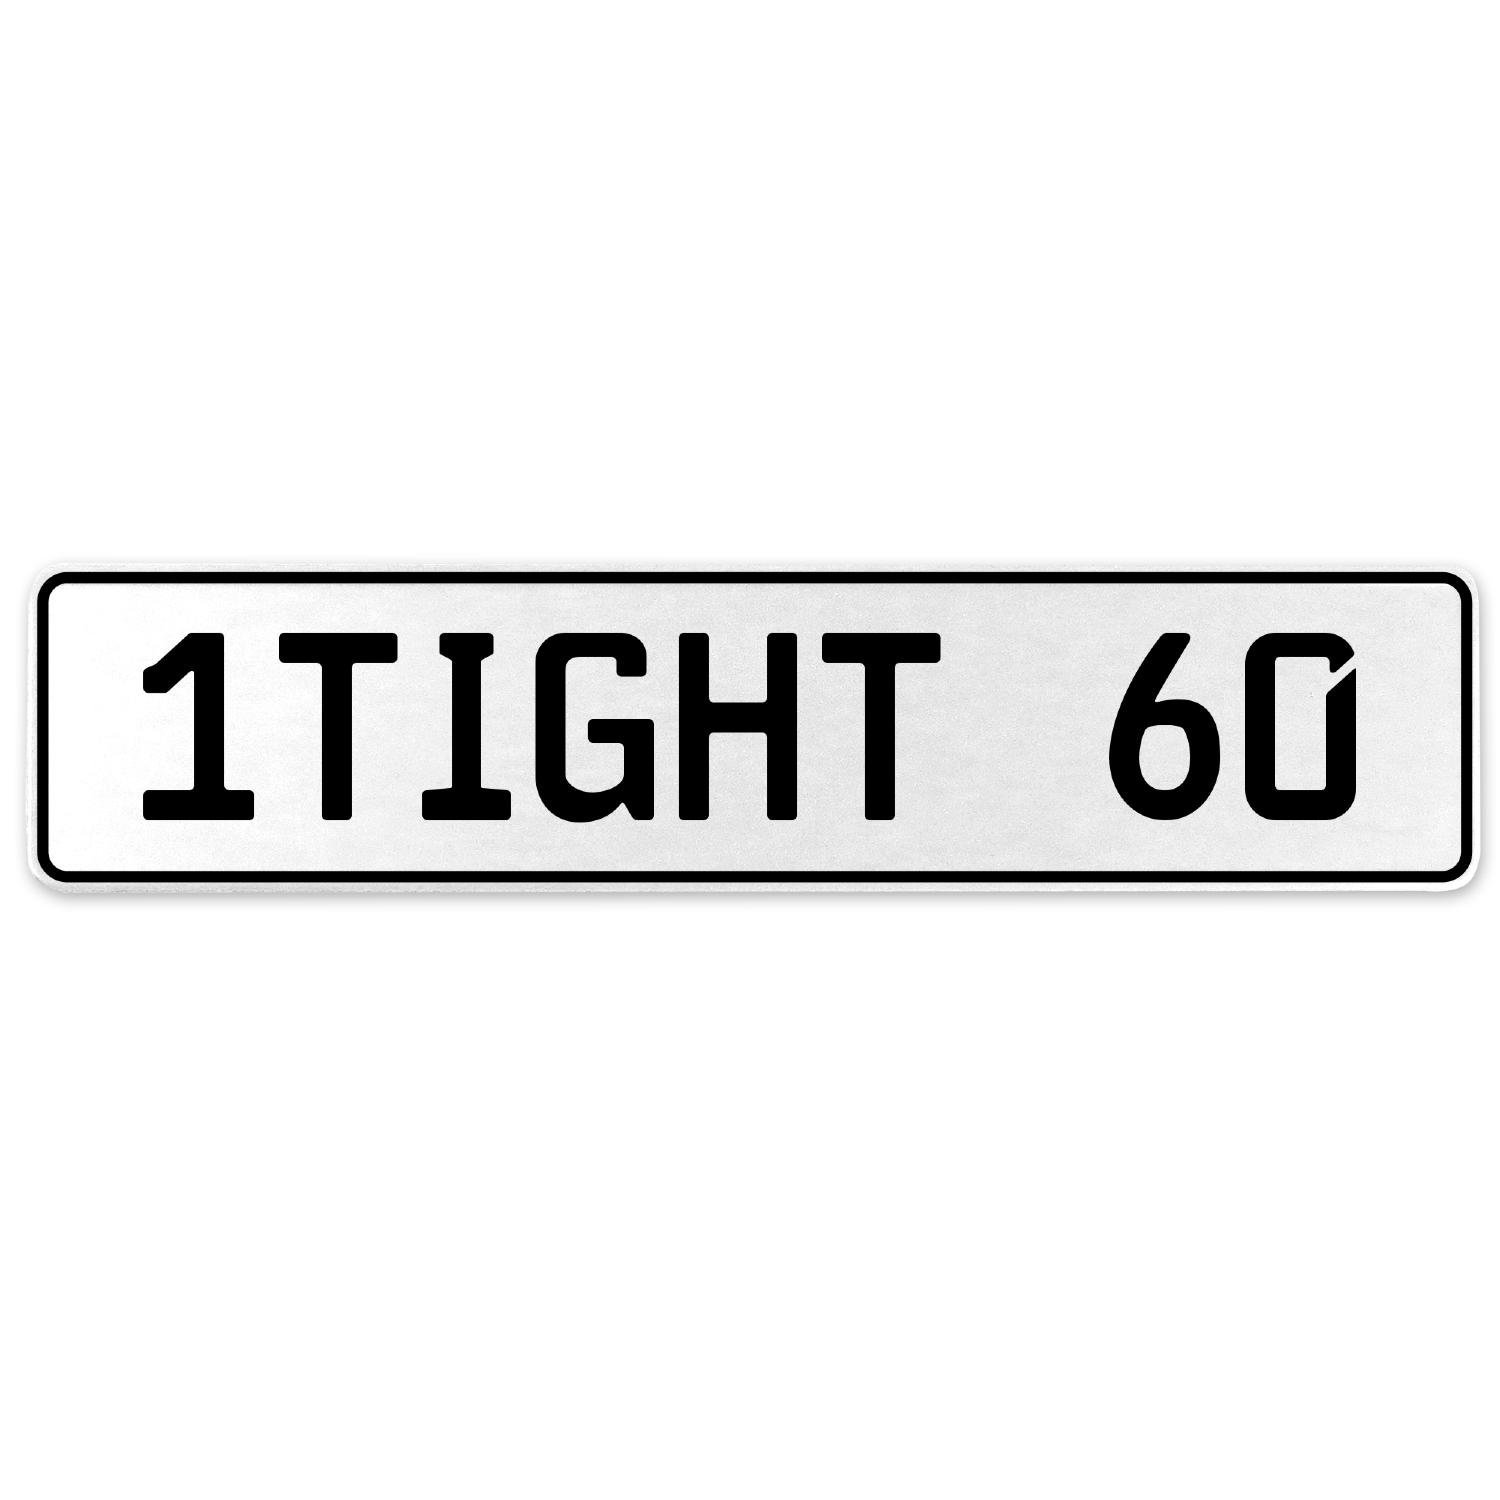 Vintage Parts 554855 1TIGHT 60 White Stamped Aluminum European License Plate